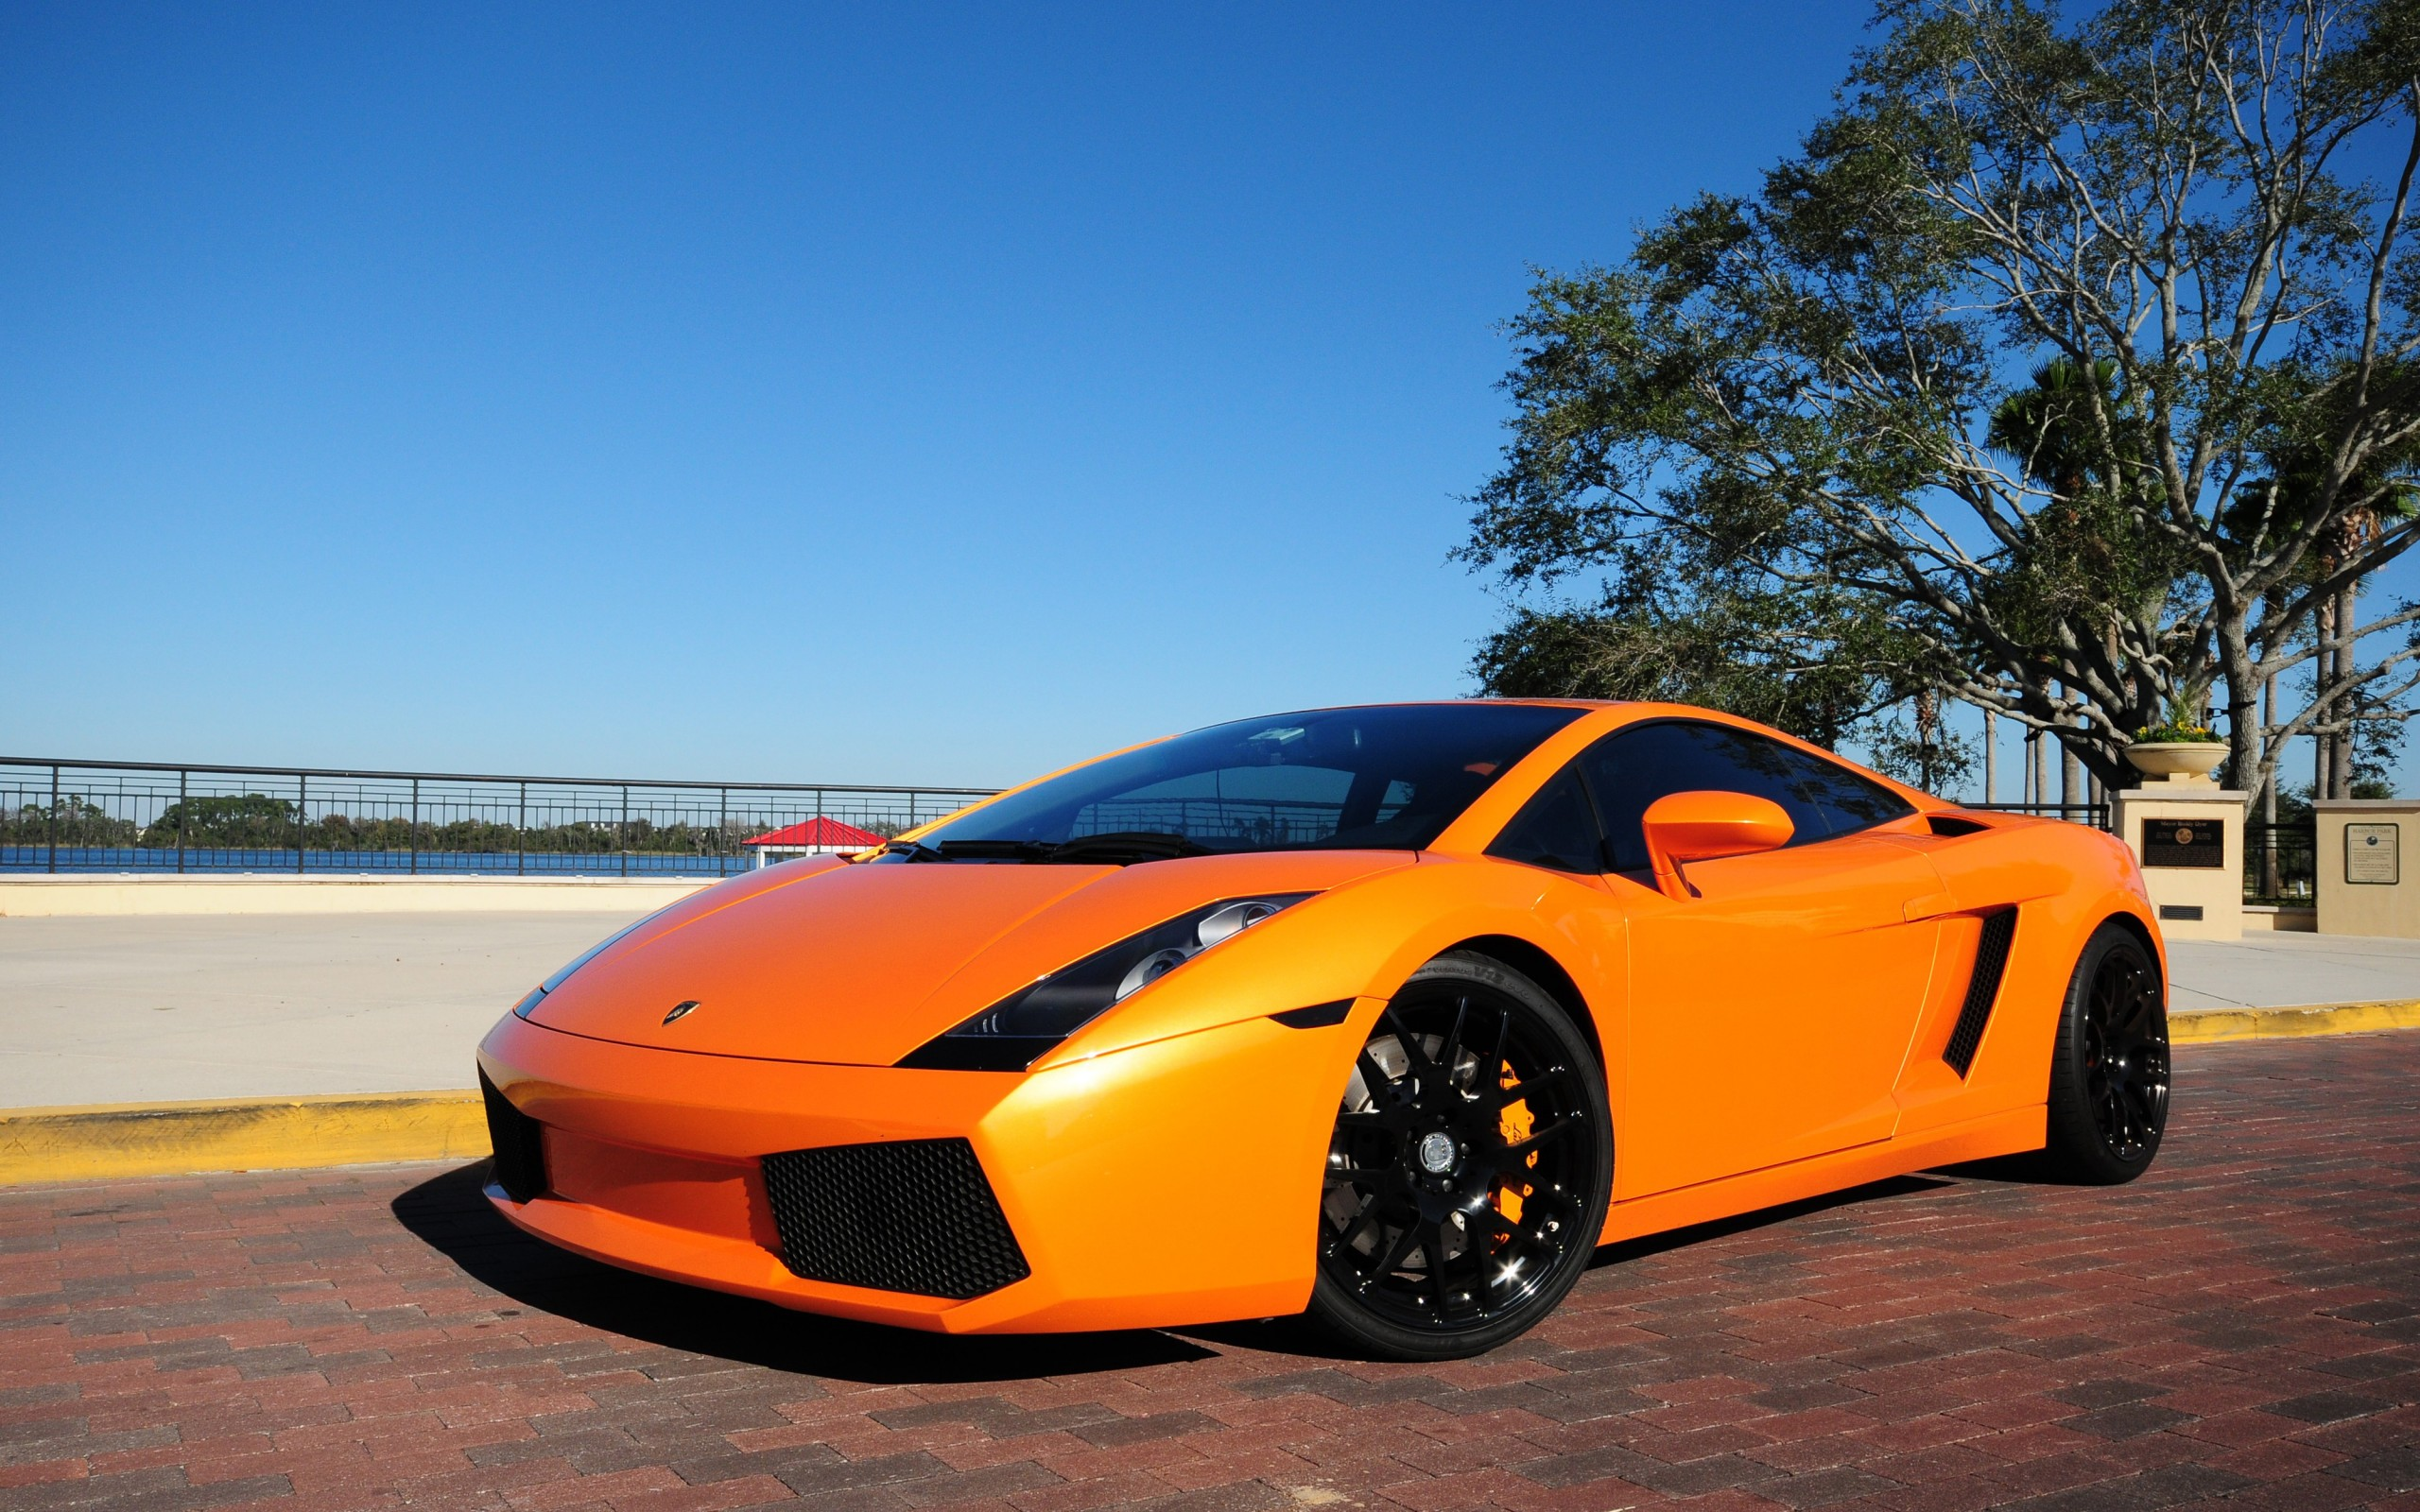 lamborghini gallardo wallpaper hd widescreen - Lamborghini Gallardo Wallpaper Blue